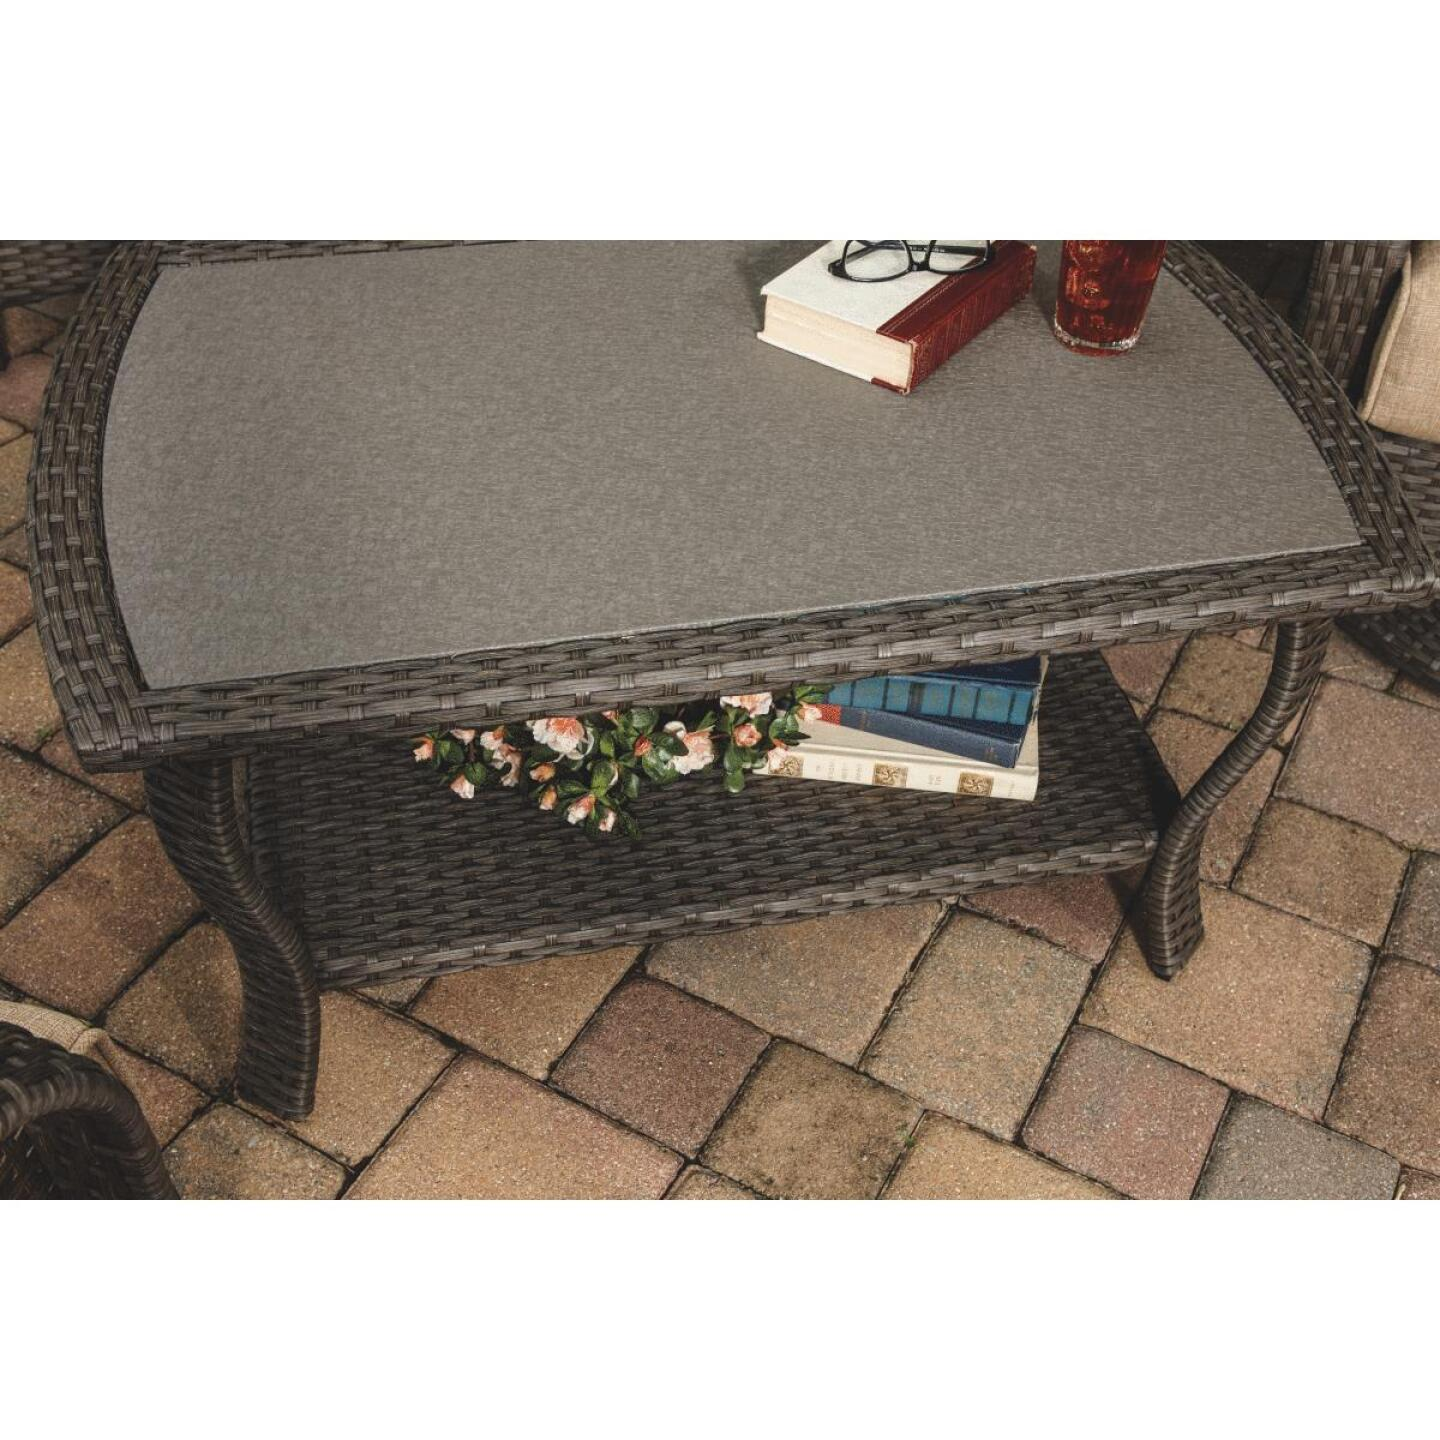 Pacific Casual Tiara Garden 2-Person Love Seat with Coffee Table Image 14